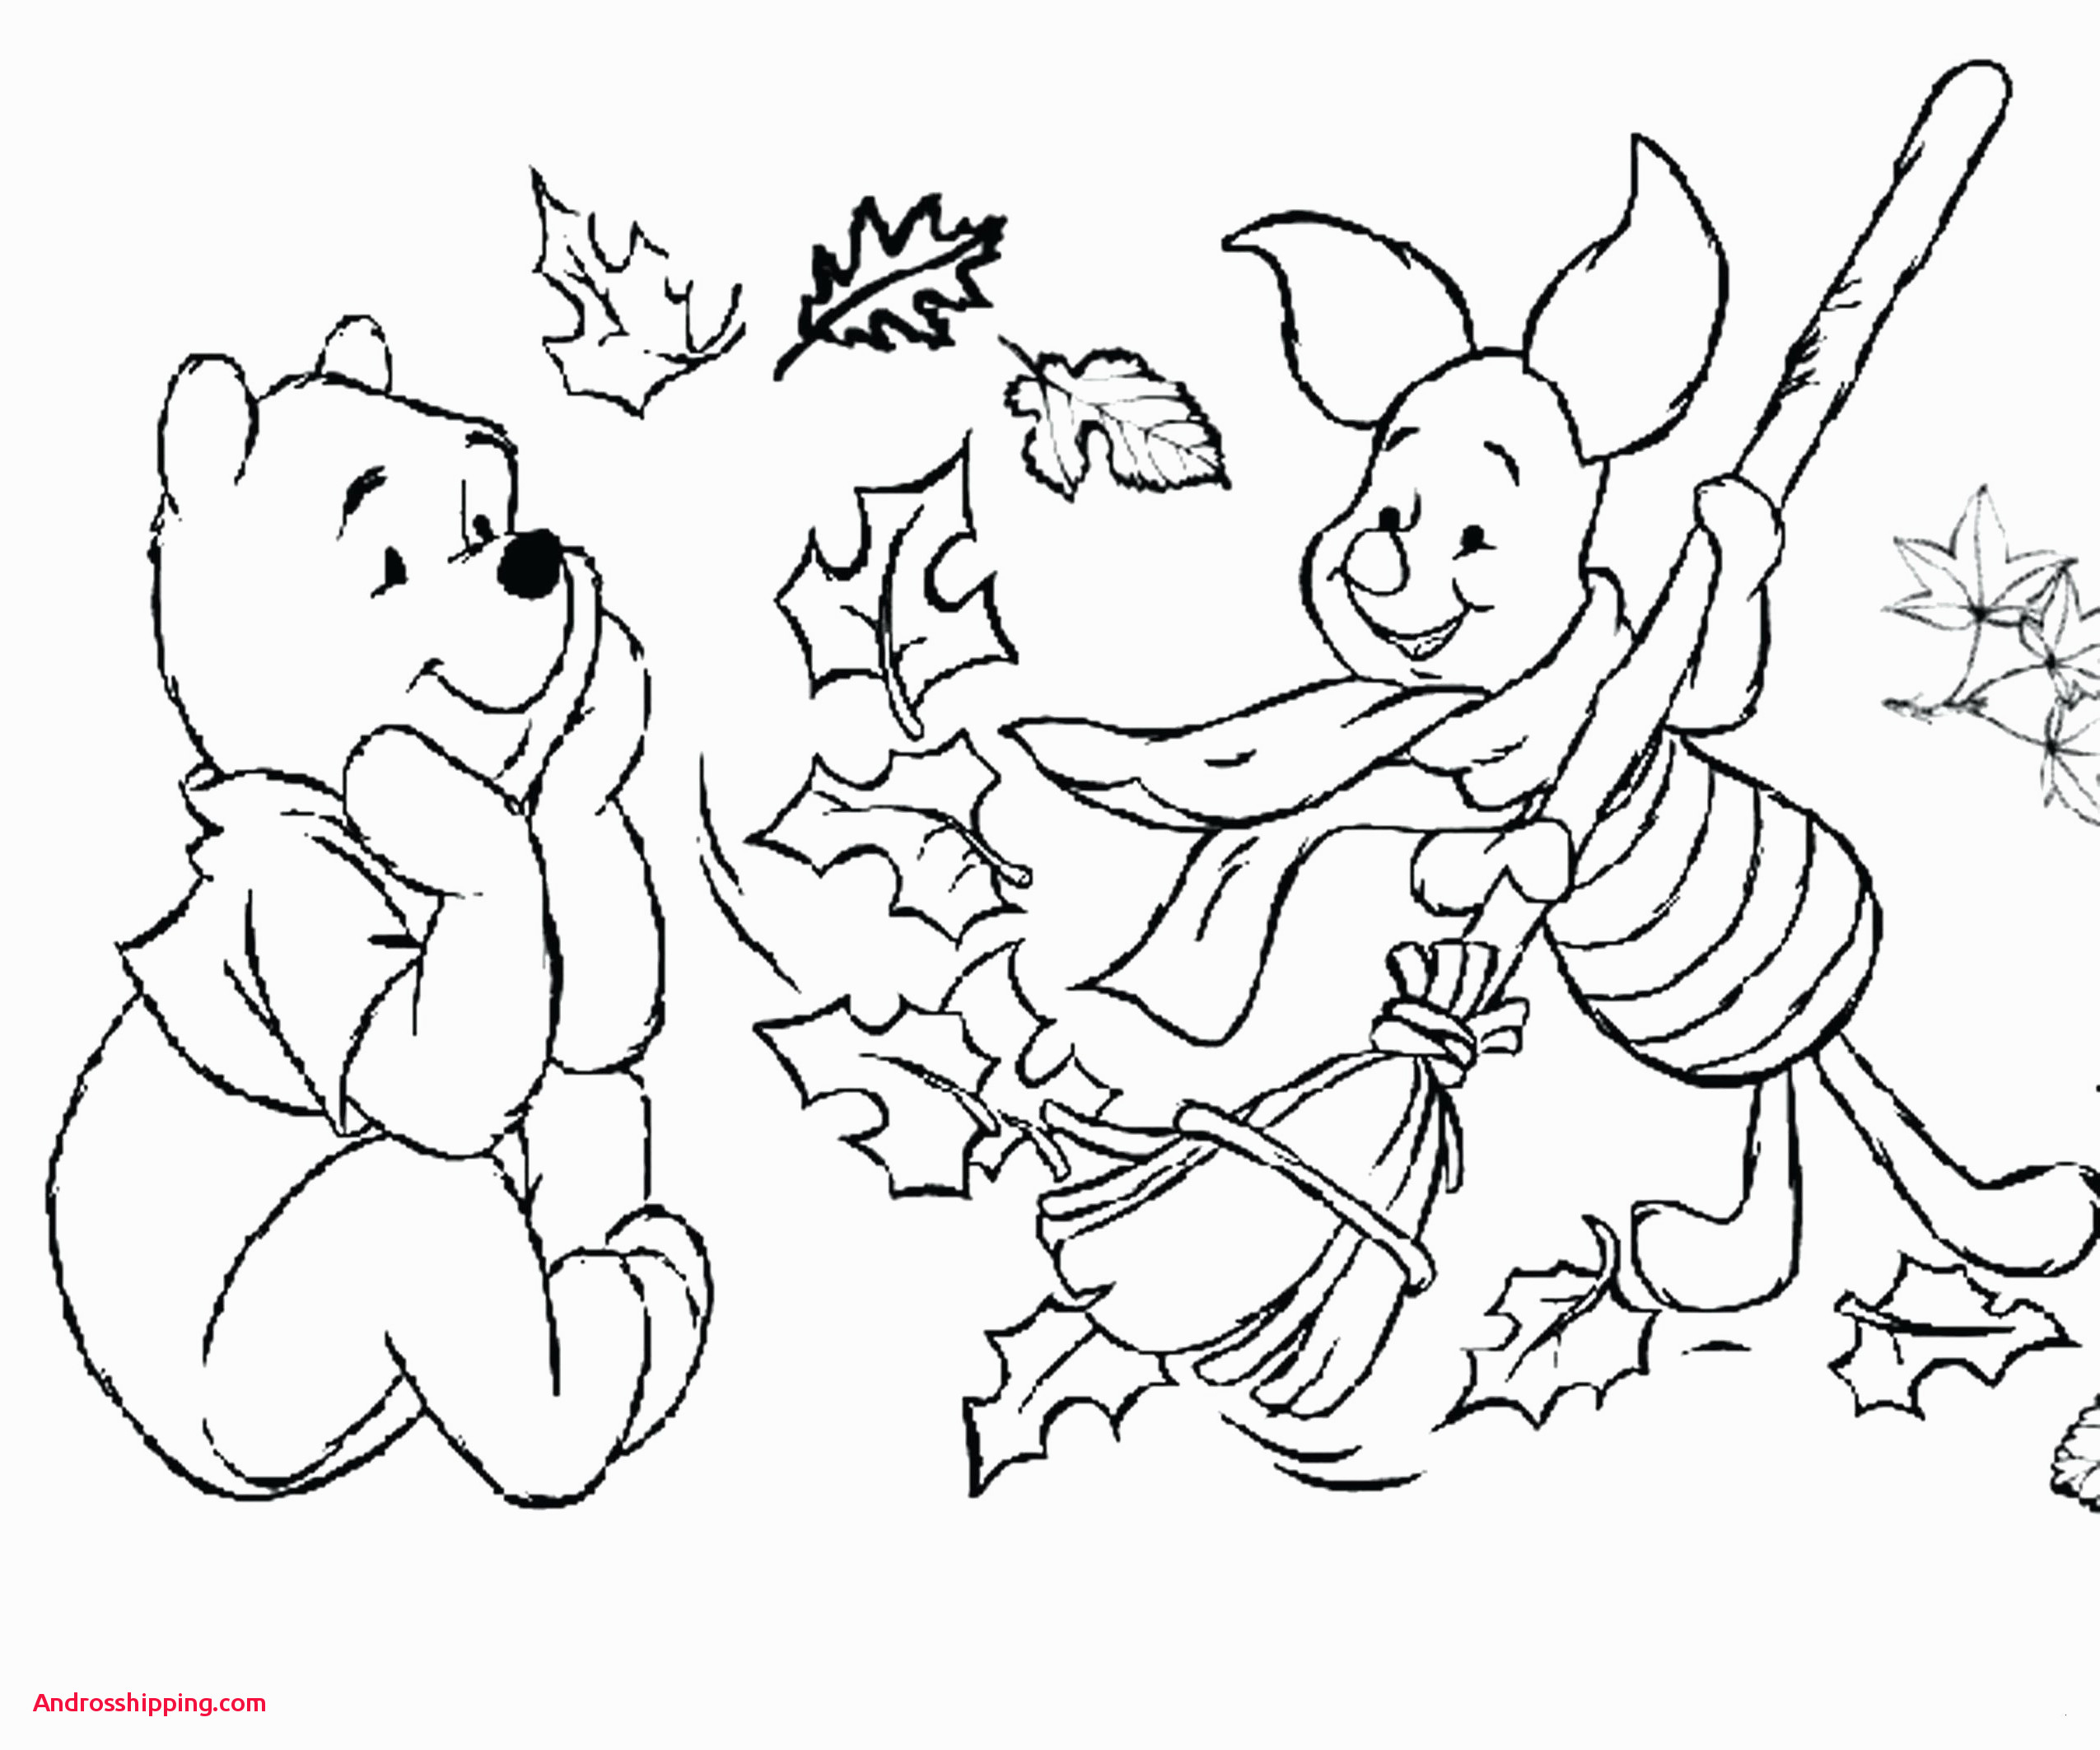 free paw patrol coloring pages Collection-Free Printable Coloring Pages for Kids Great Kids Printable Coloring Pages Elegant Fall Coloring Pages 0d Free Paw Patrol 5-n